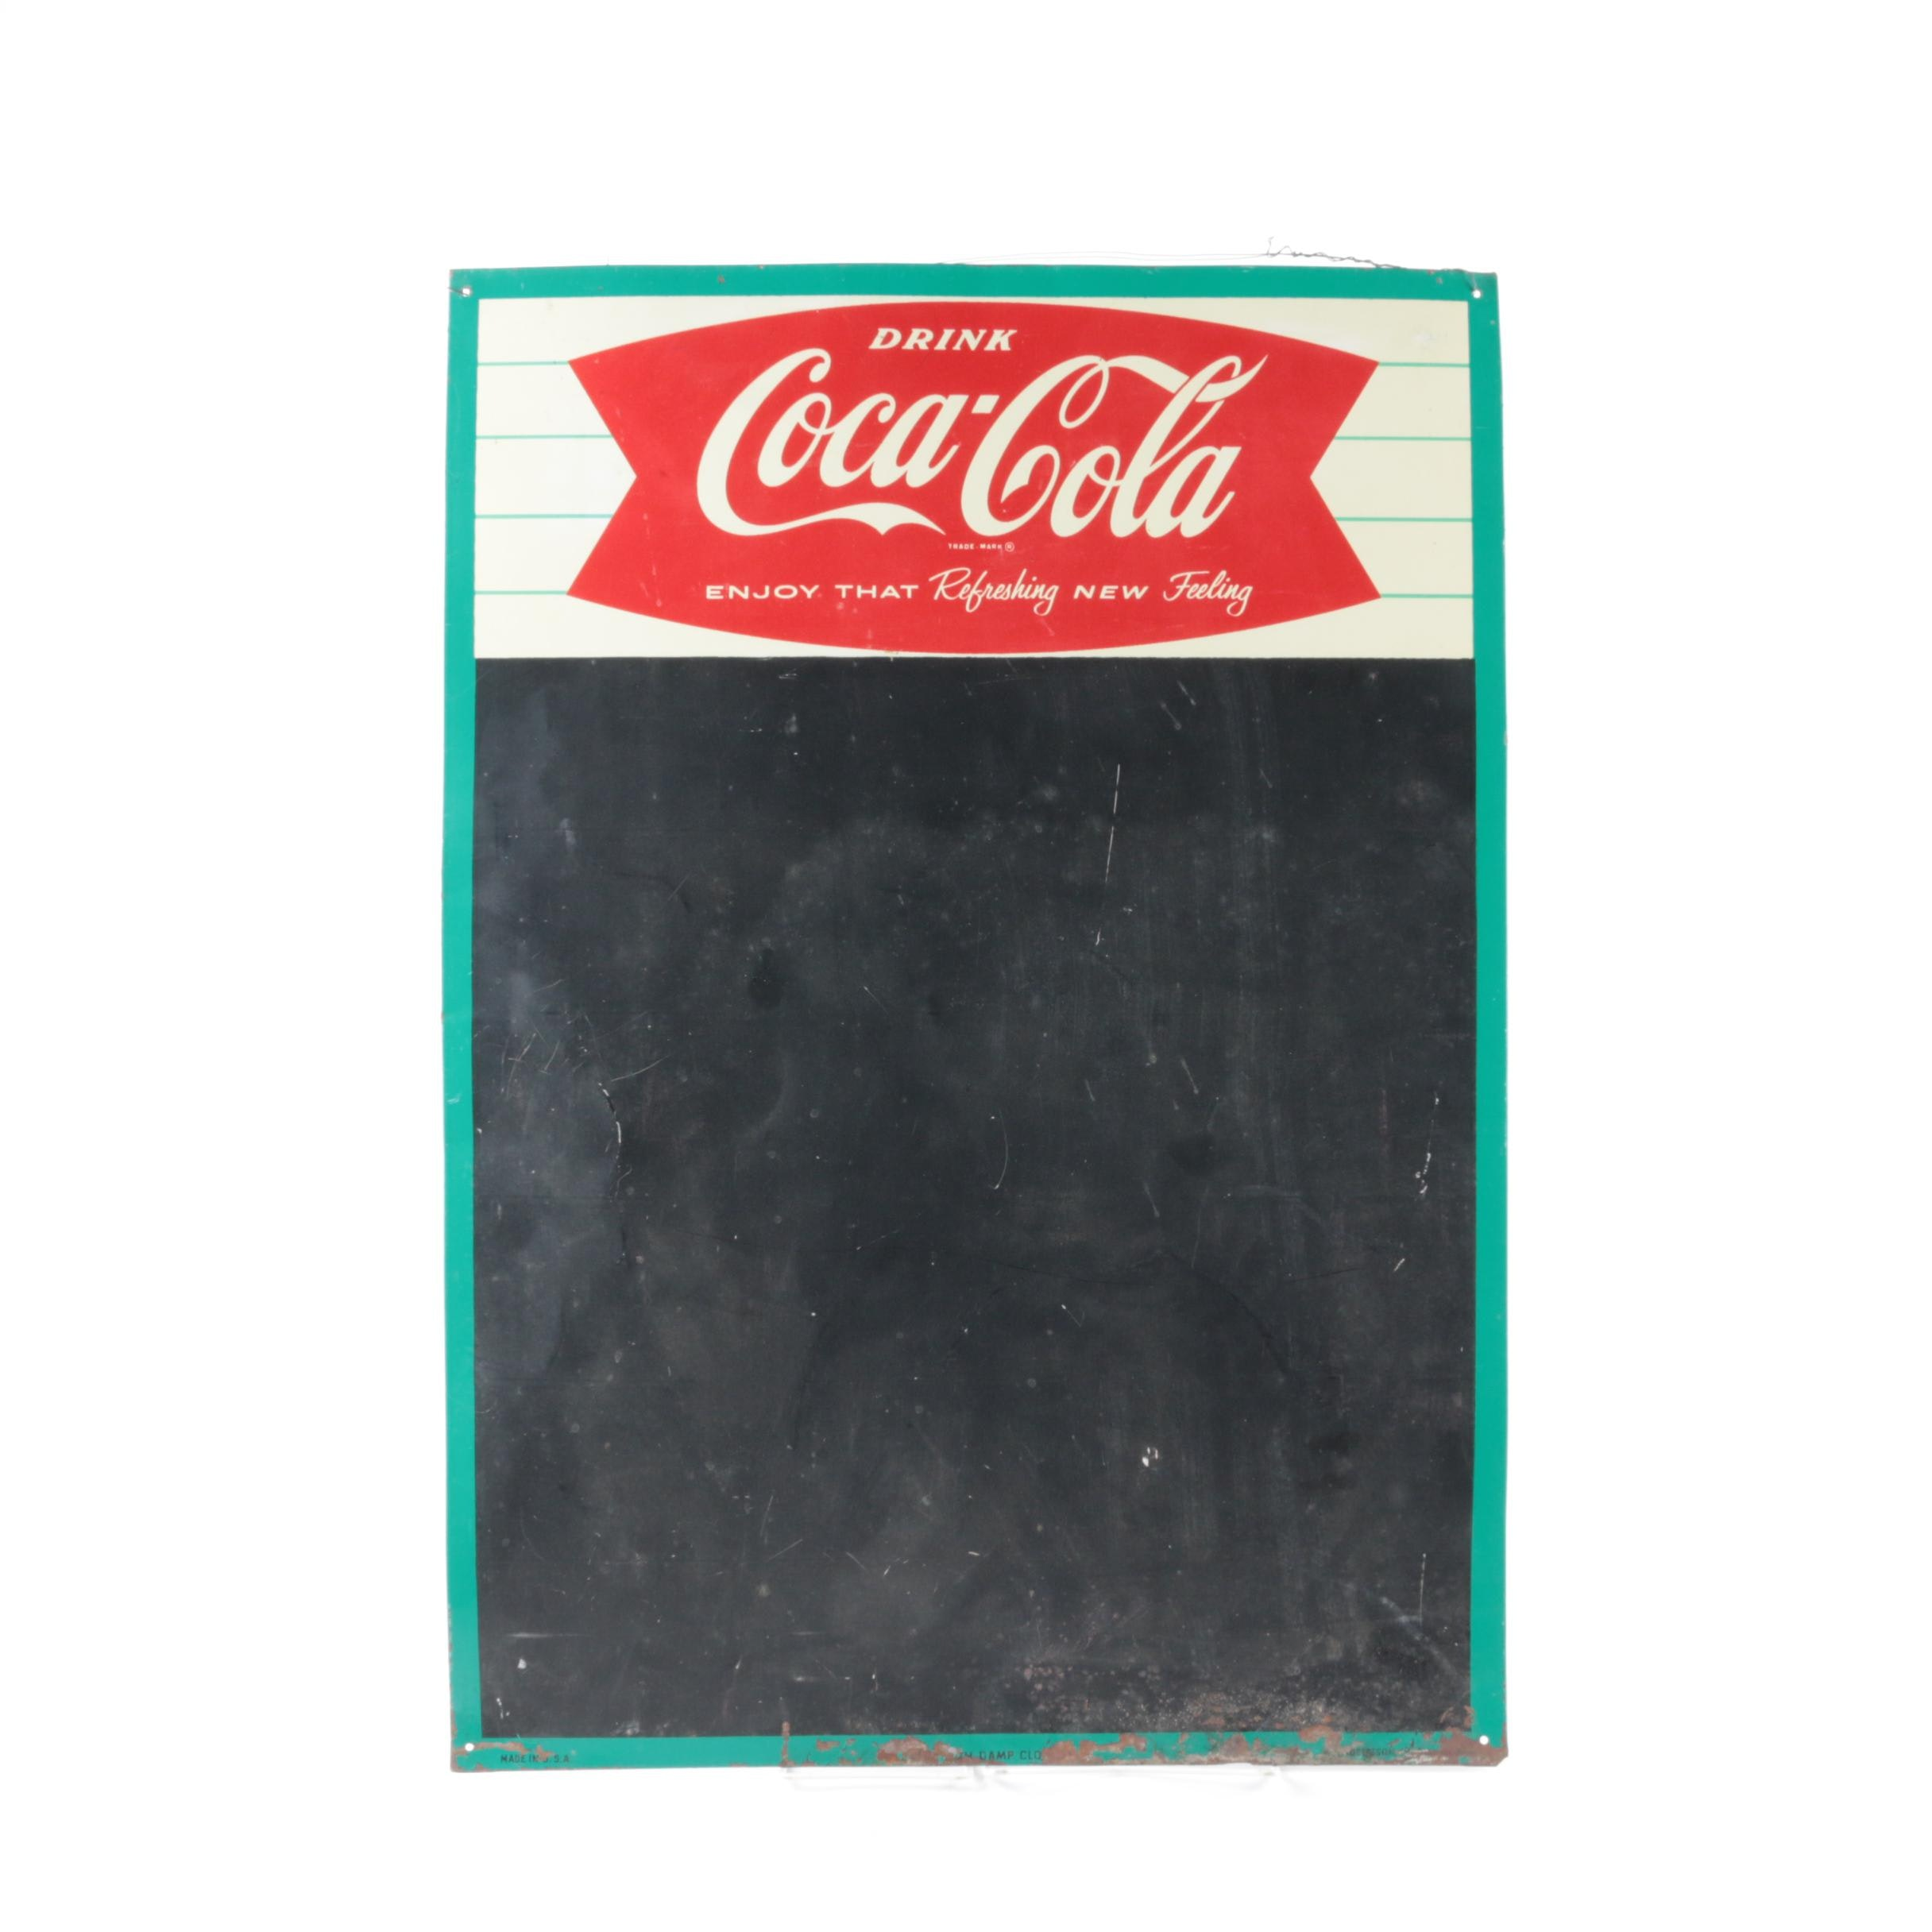 Vintage Coca-Cola Menu Board